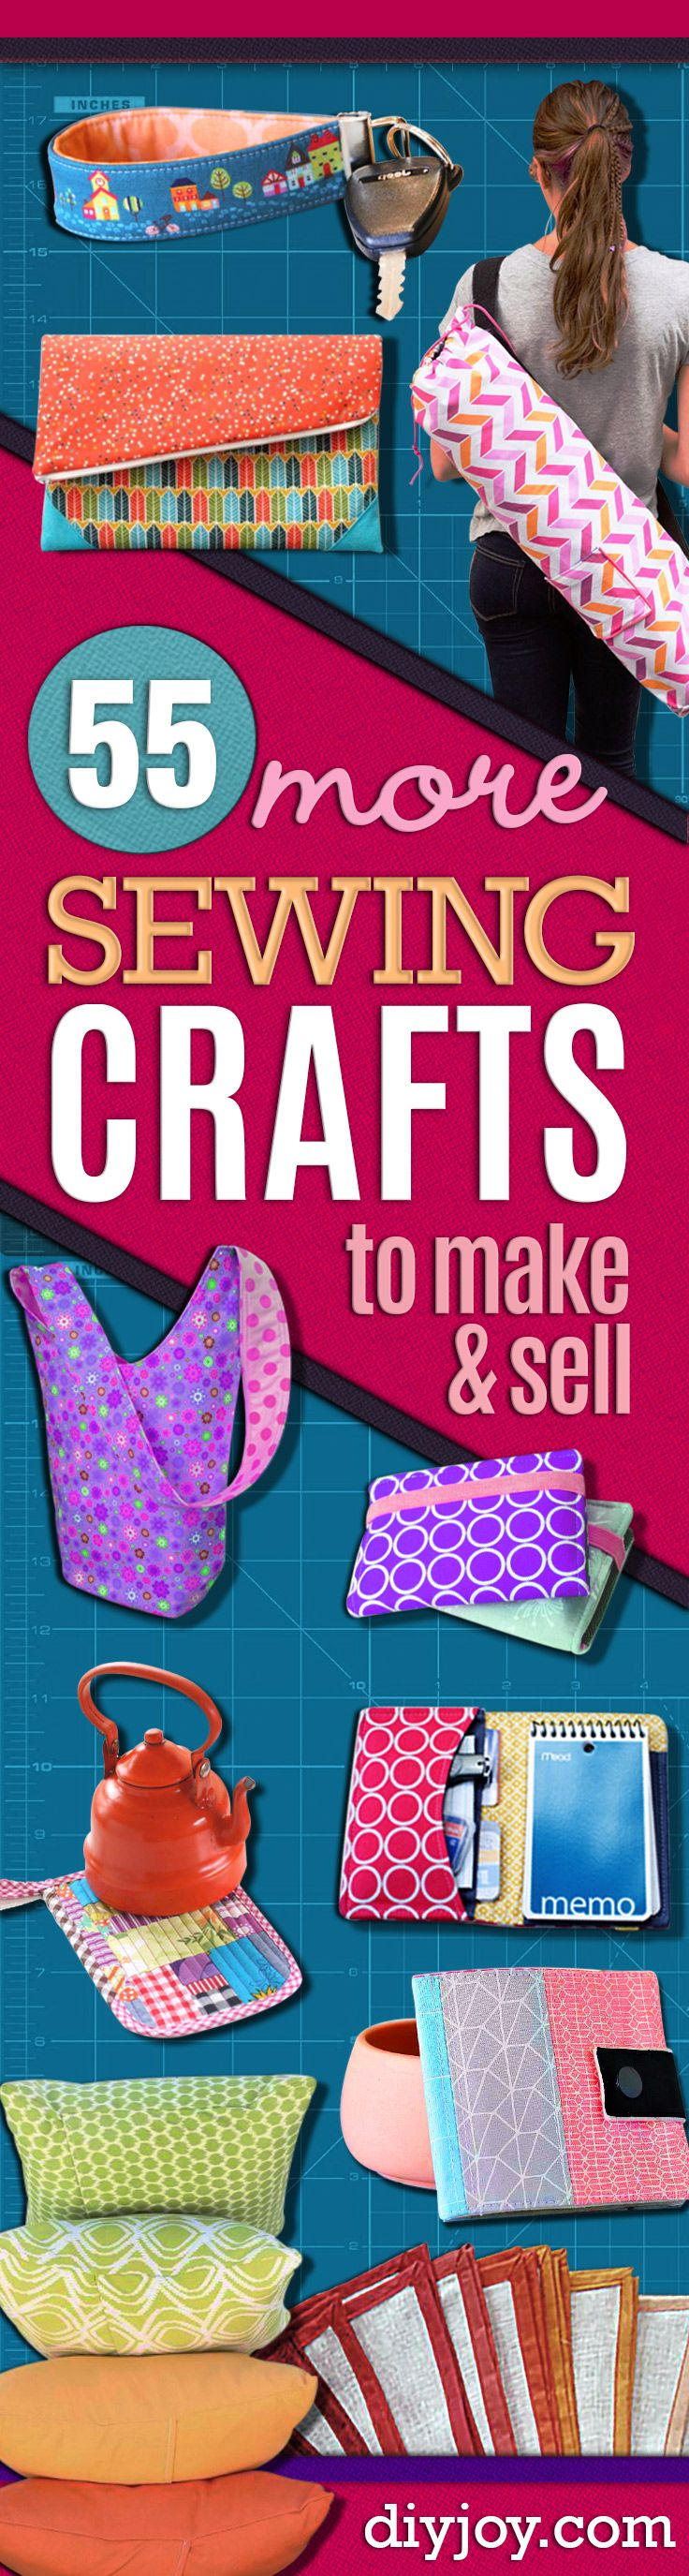 1000 images about small sewing projects on pinterest for Great crafts to make and sell